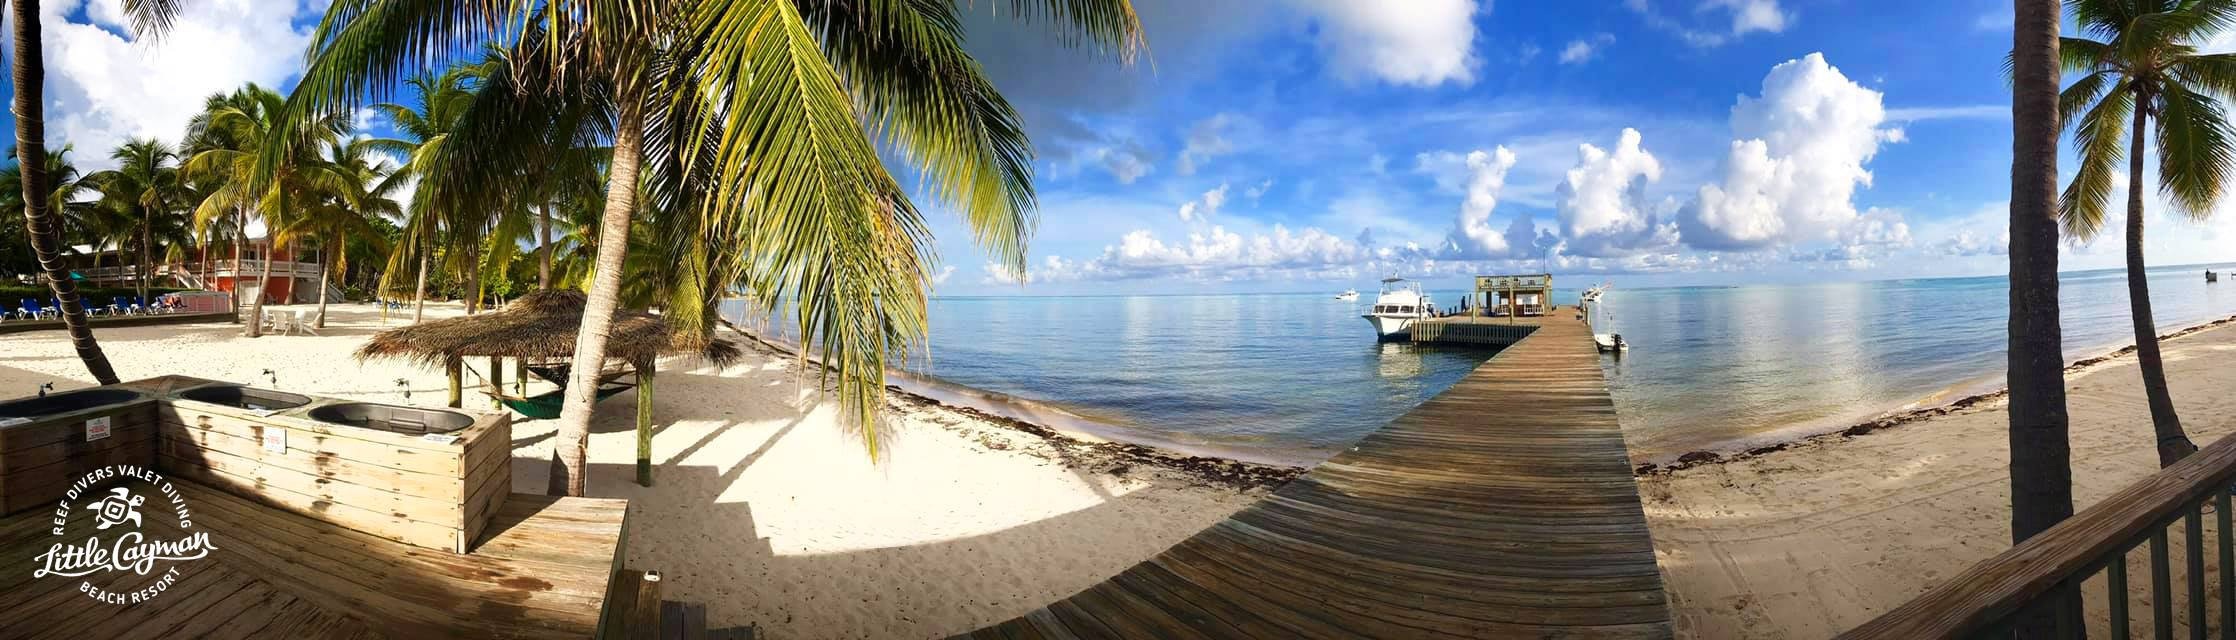 Escape to Little Cayman